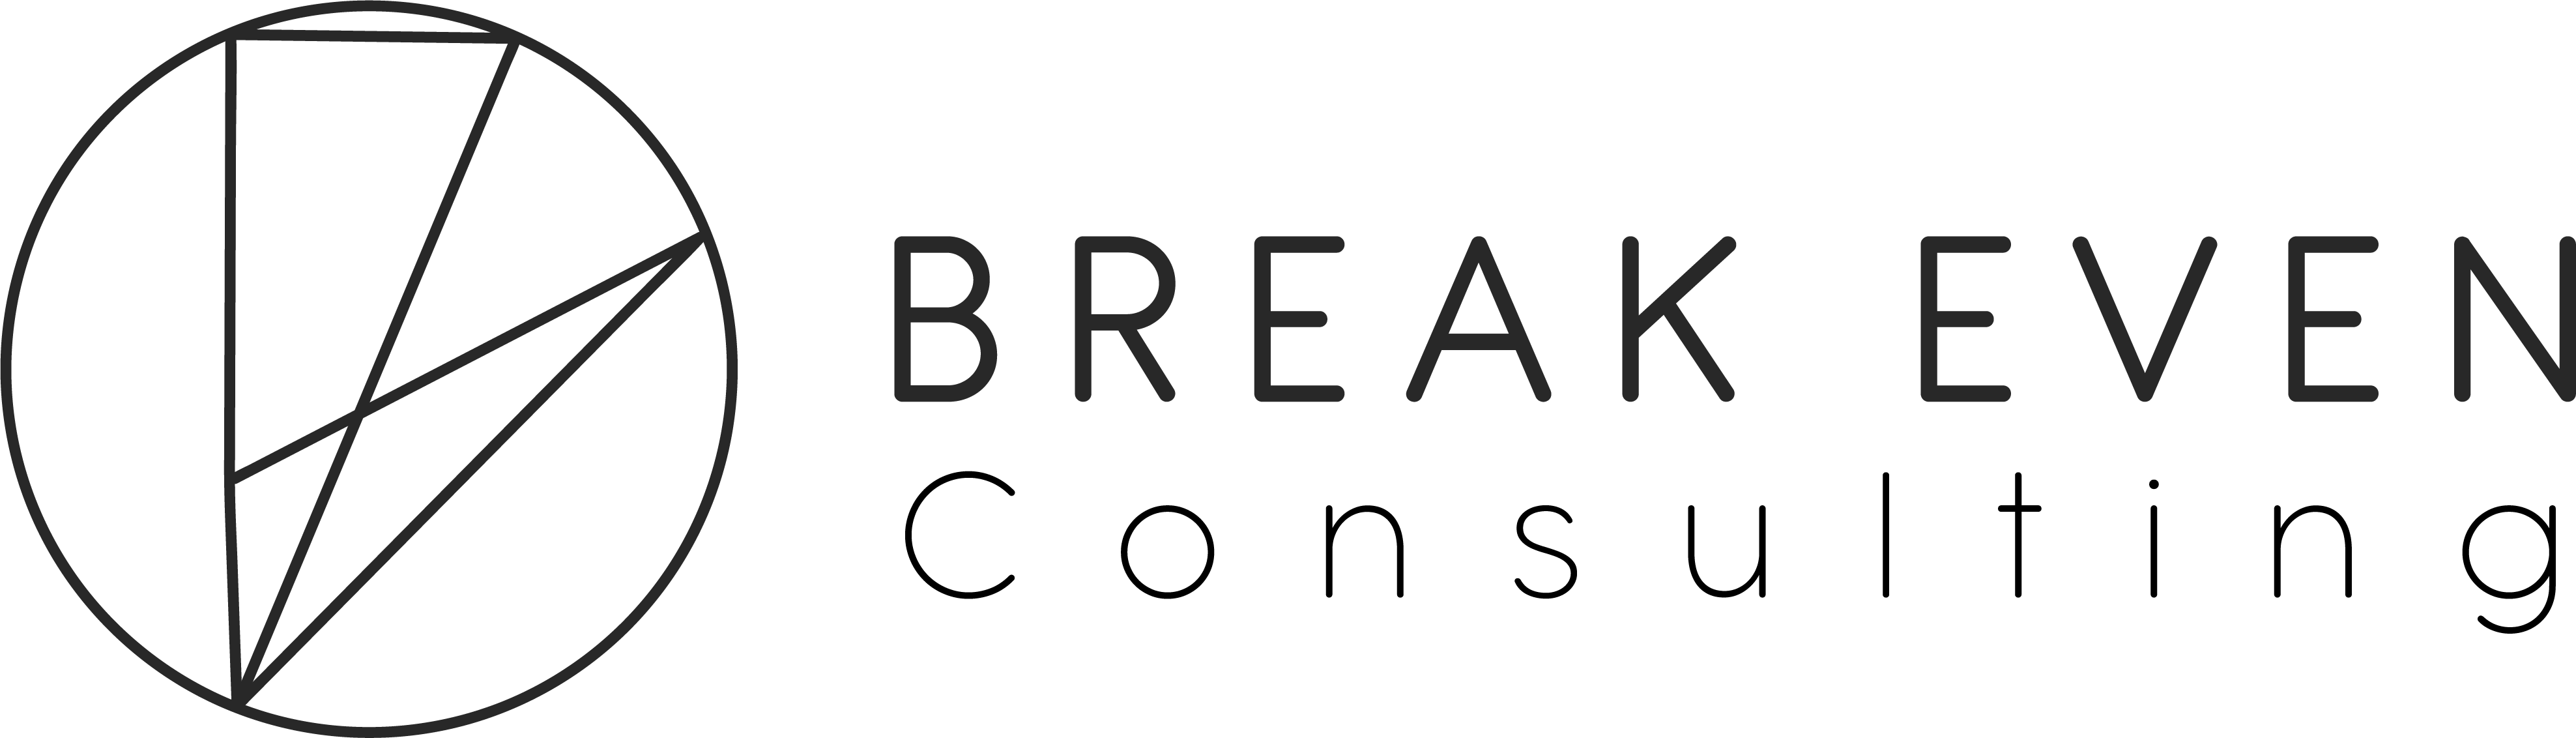 Break-Even